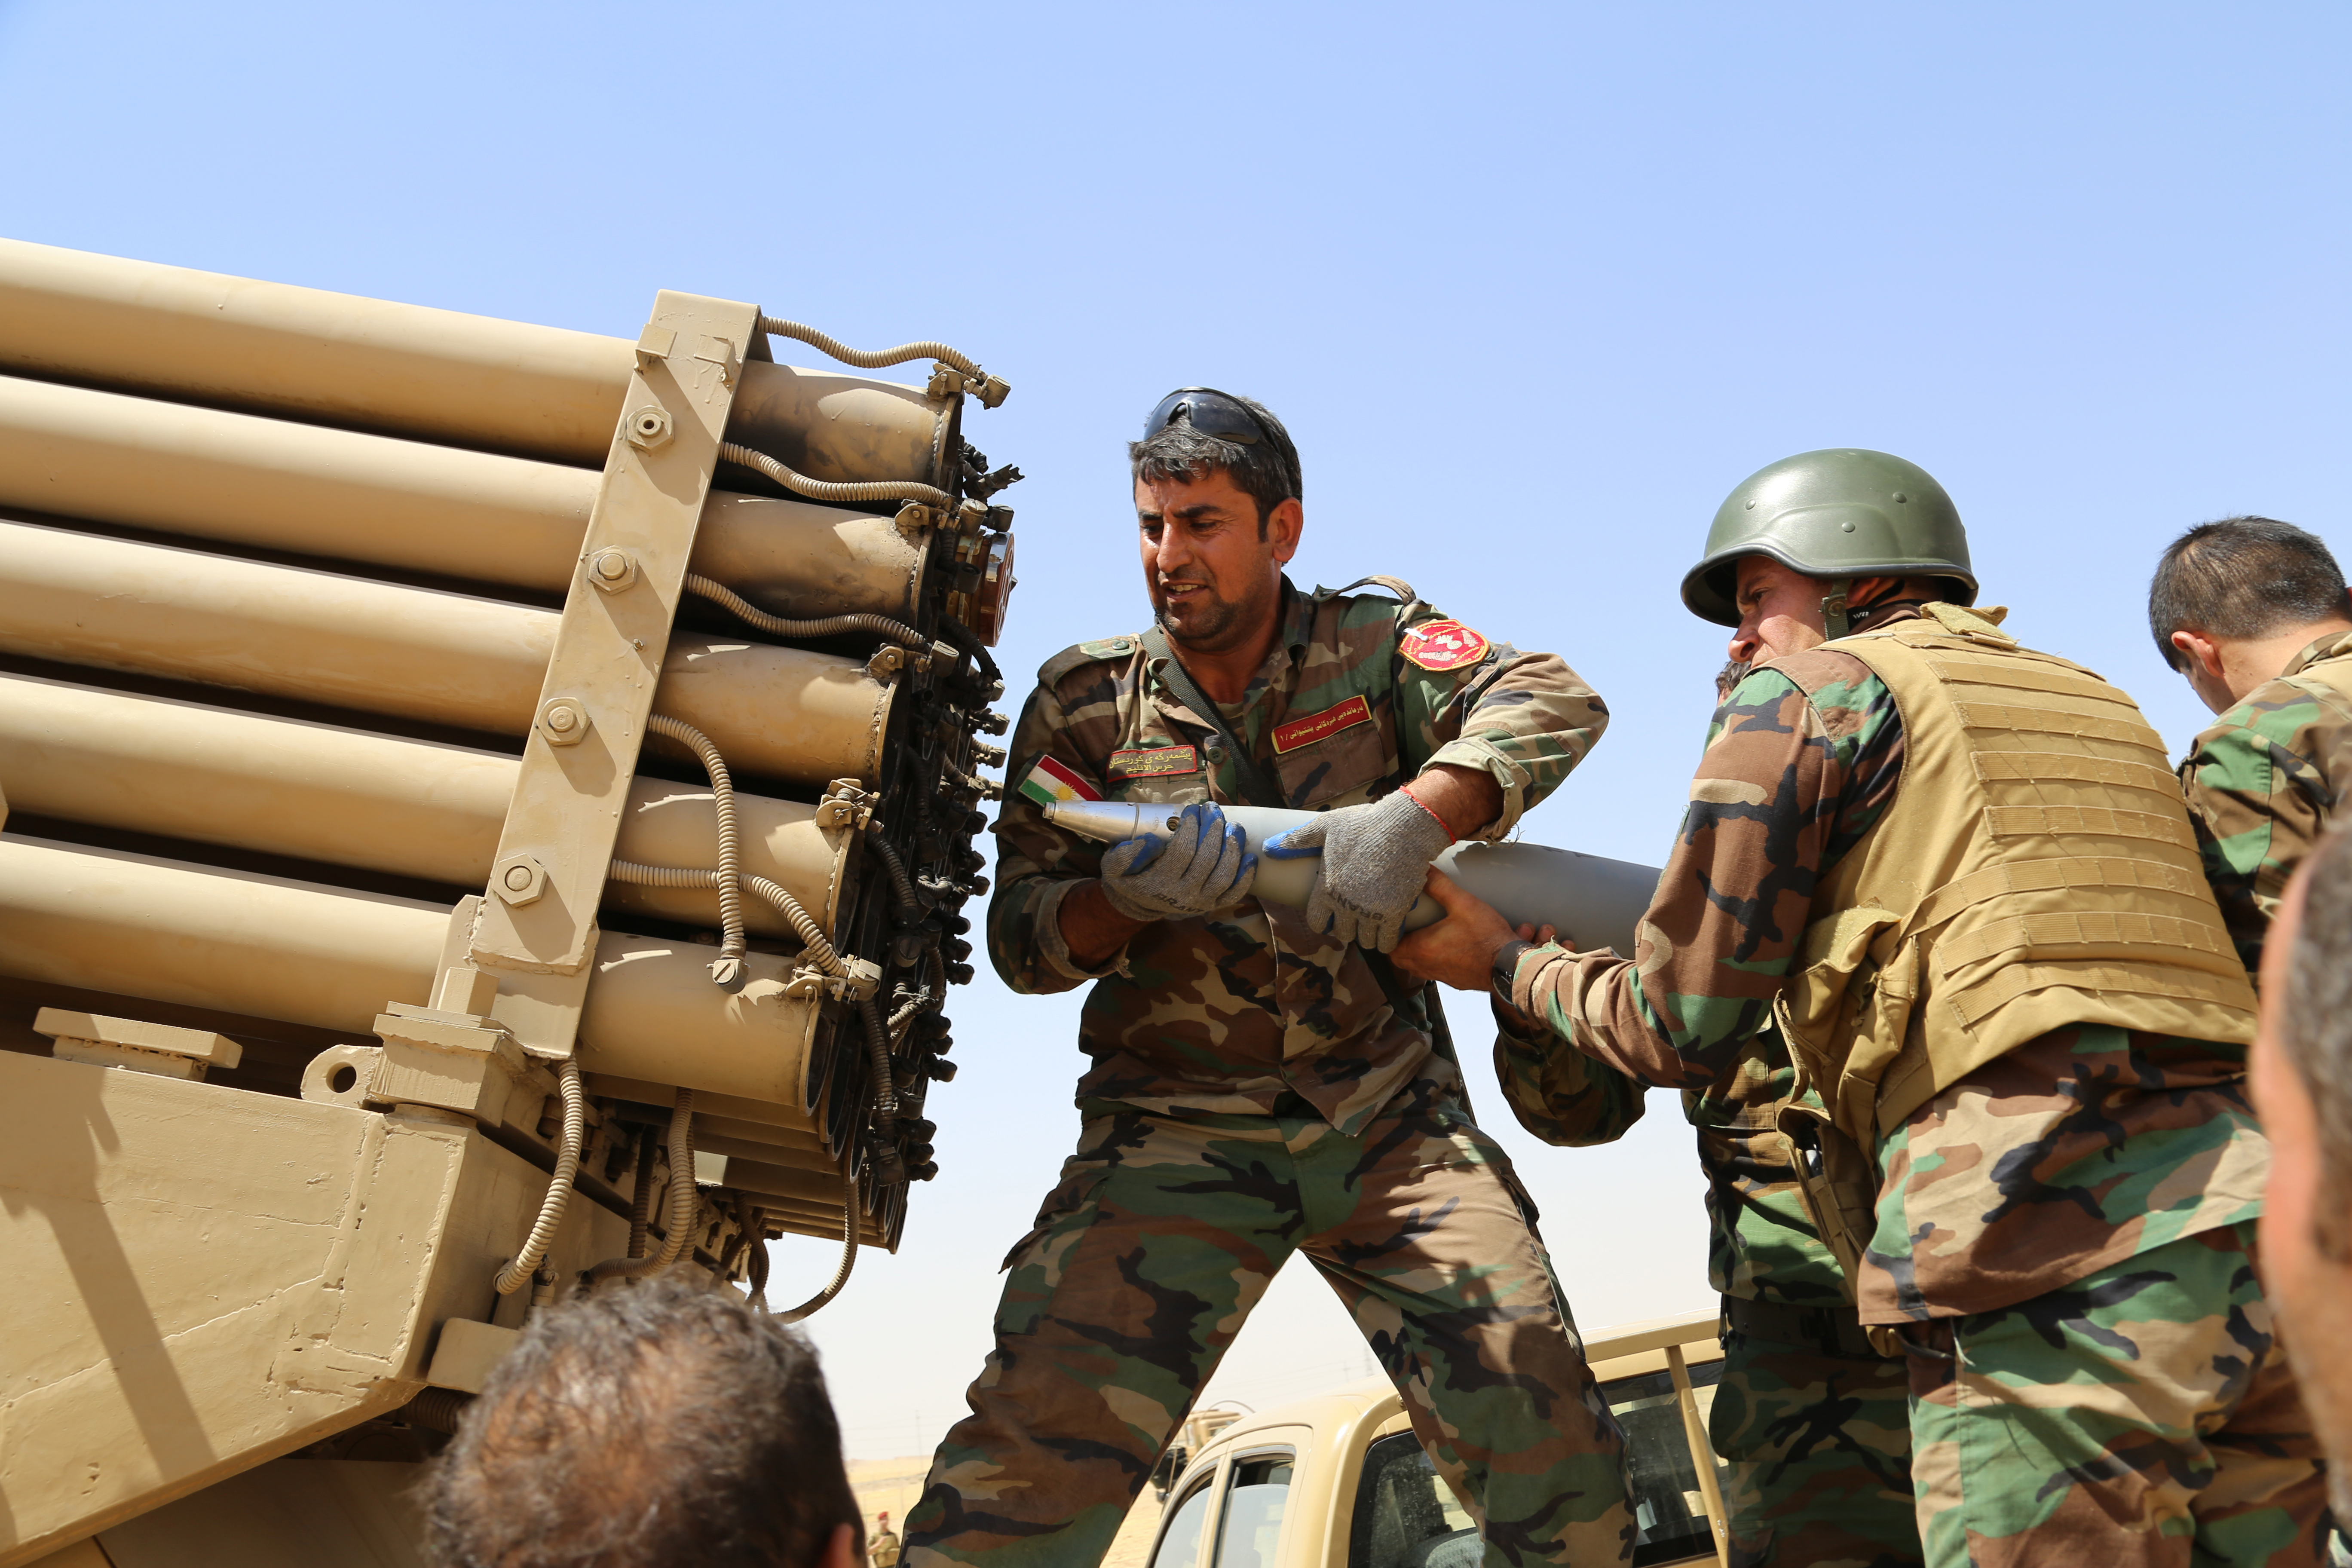 Kurdish peshmerga fighters load missile launcher during the clashes with the army groups led by Islamic State of Iraq and the Levant (ISIL) in Mosul, Iraq on 8 August, 2014.